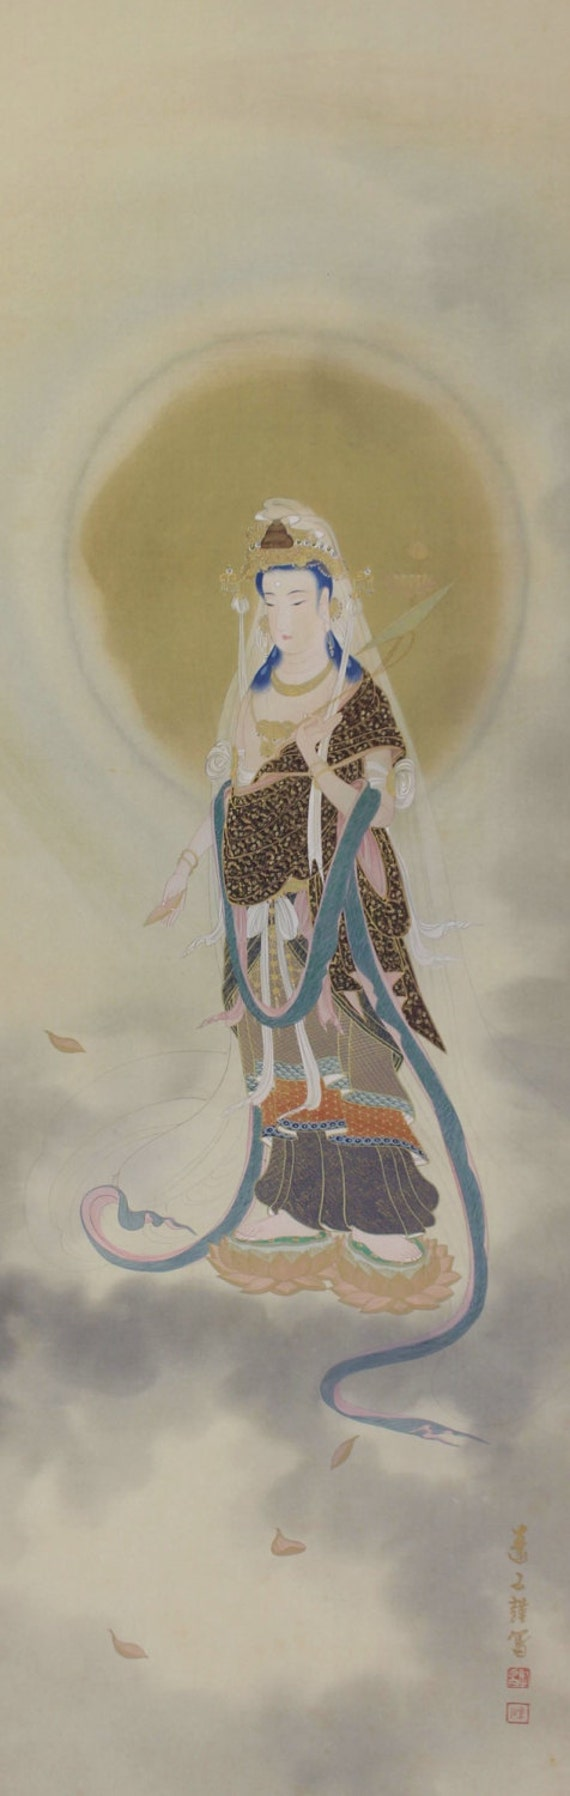 Japanese Fine Art Buddhist Art Wall Hanging Scroll Painting Kanzeon Guanyin the Goddess of Mercy Kakejiku - 1503149